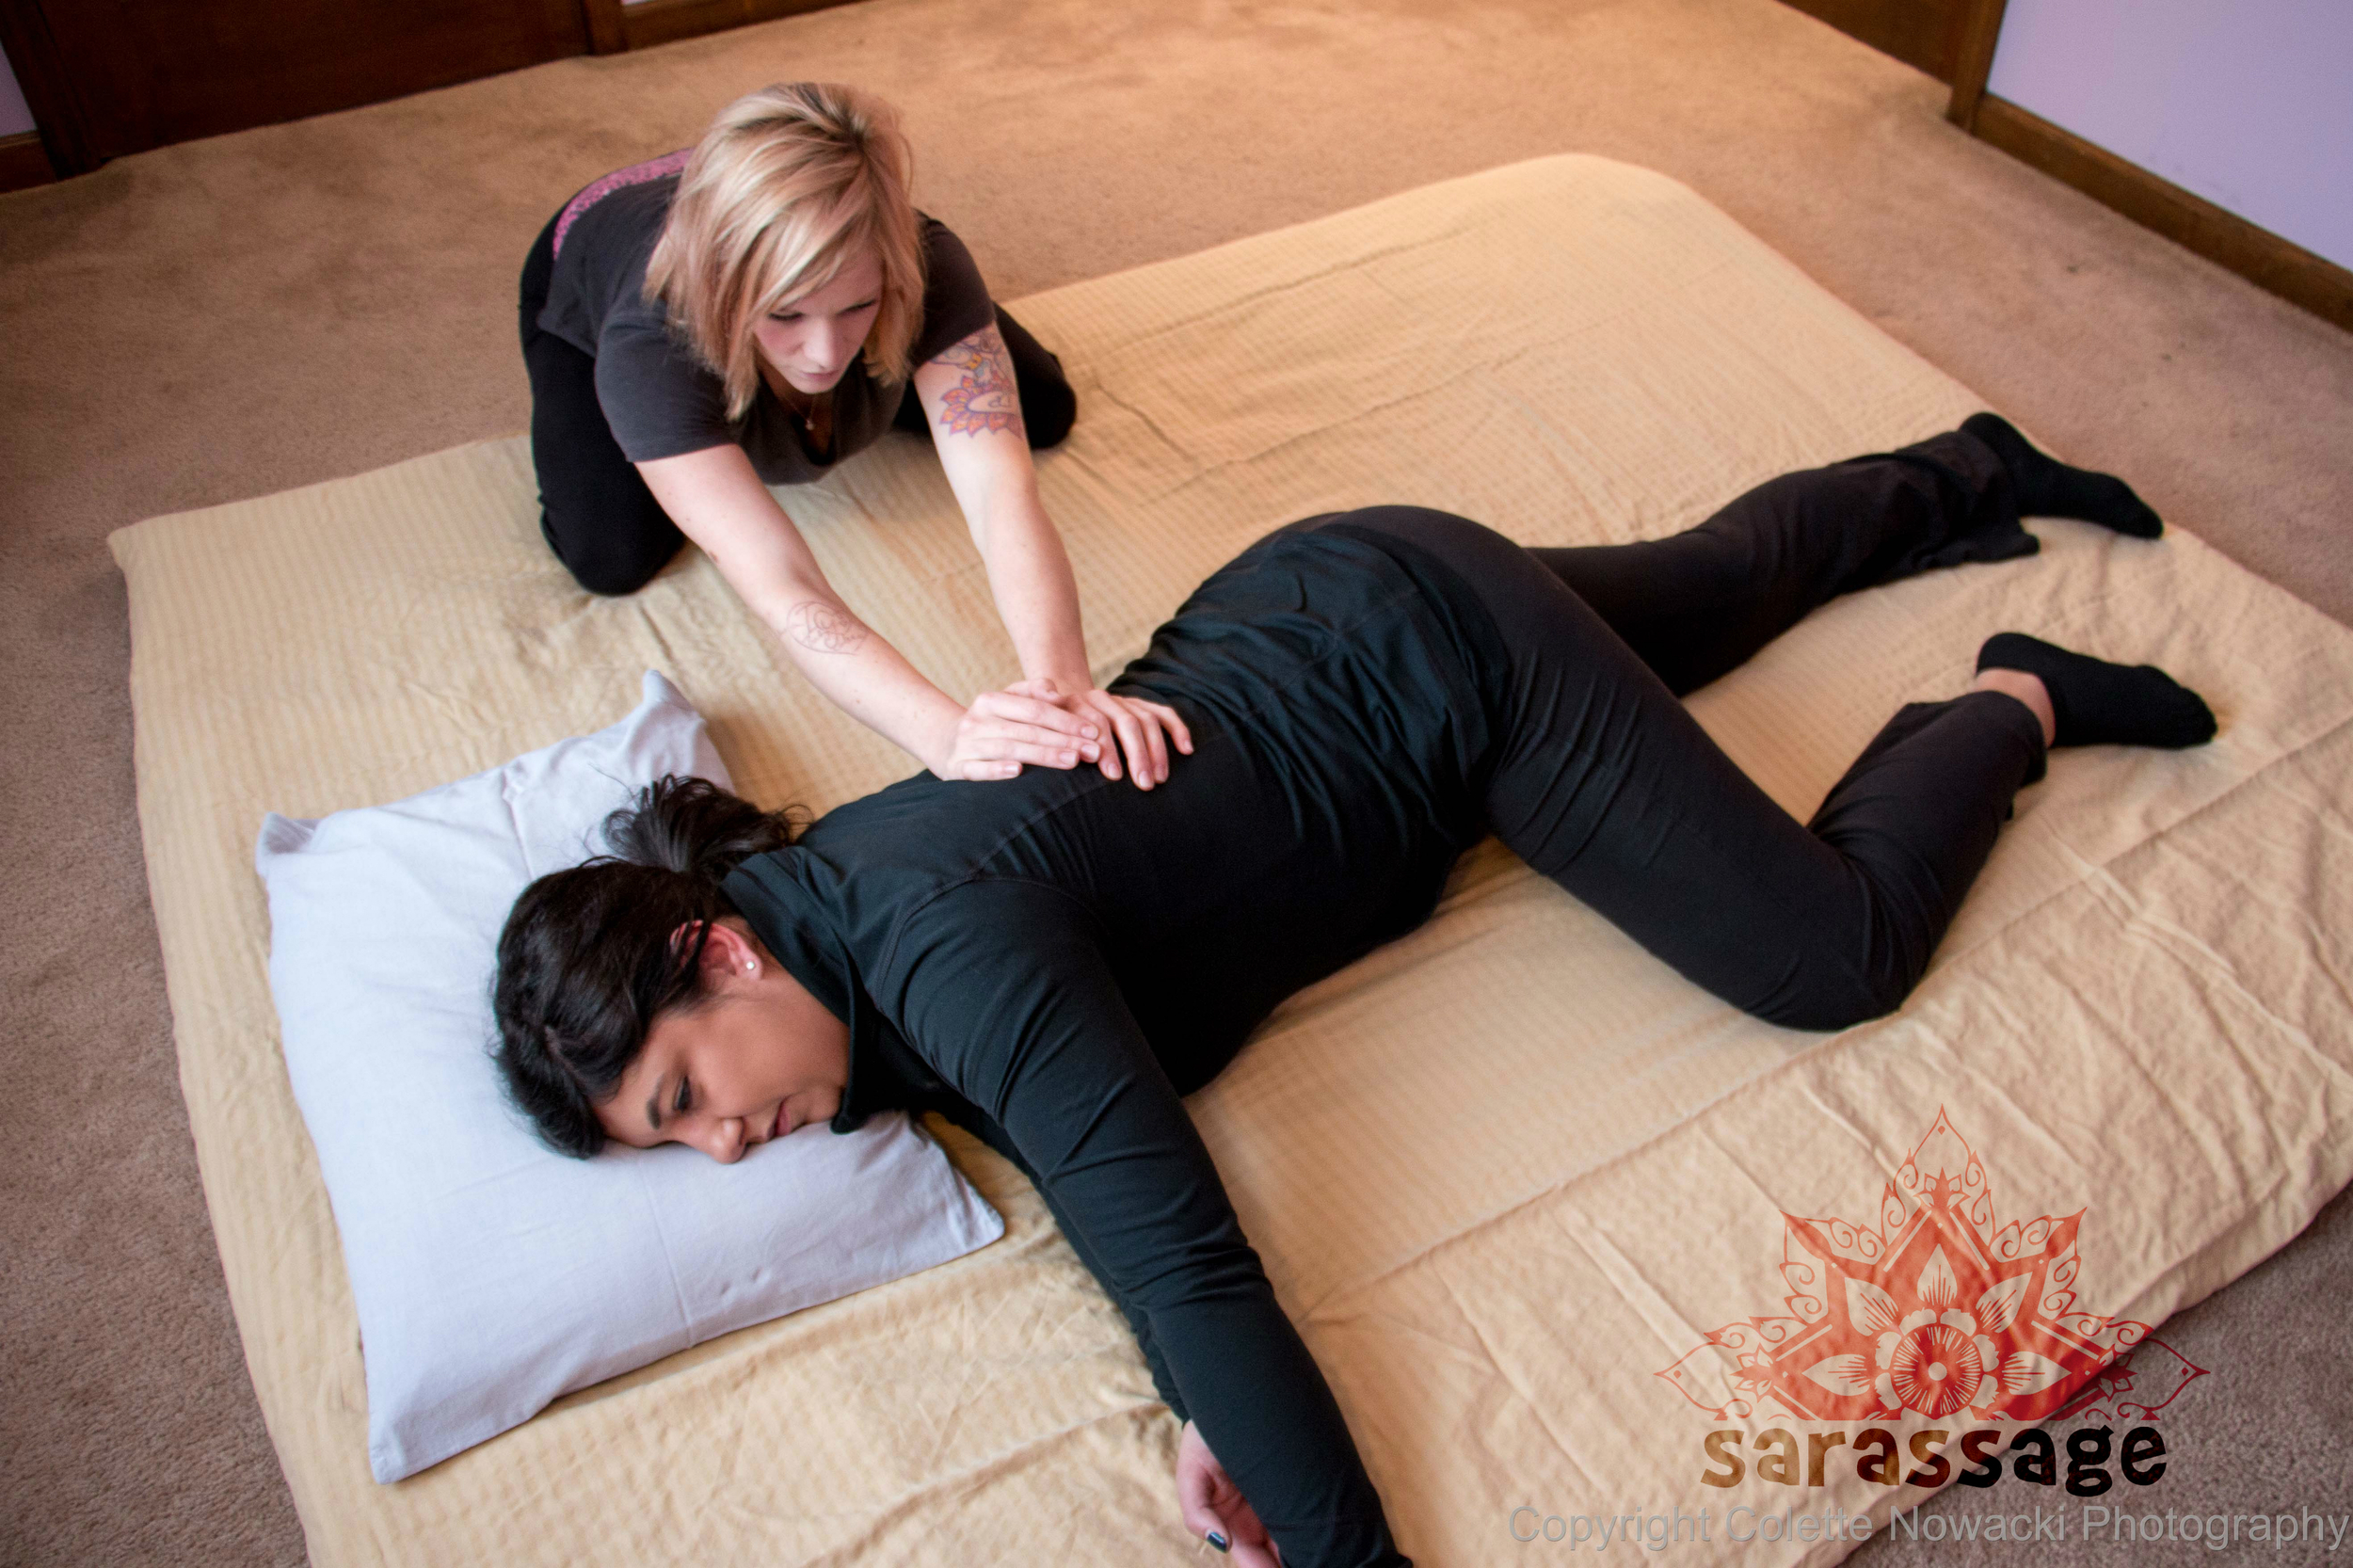 Basic Flow Thai Massage    60/$80 | 90/$115   Are you looking to increase your flexibility? This session is performed on a specialized Thai yoga mat (similar to a futon mattress) where the therapist uses deep compression techniques and assists you into various poses. Come to this session in loose, comfortable clothing and you will leave feeling loose, centered and invigorated. At this time, only 60/90 minute sessions are available for this service.